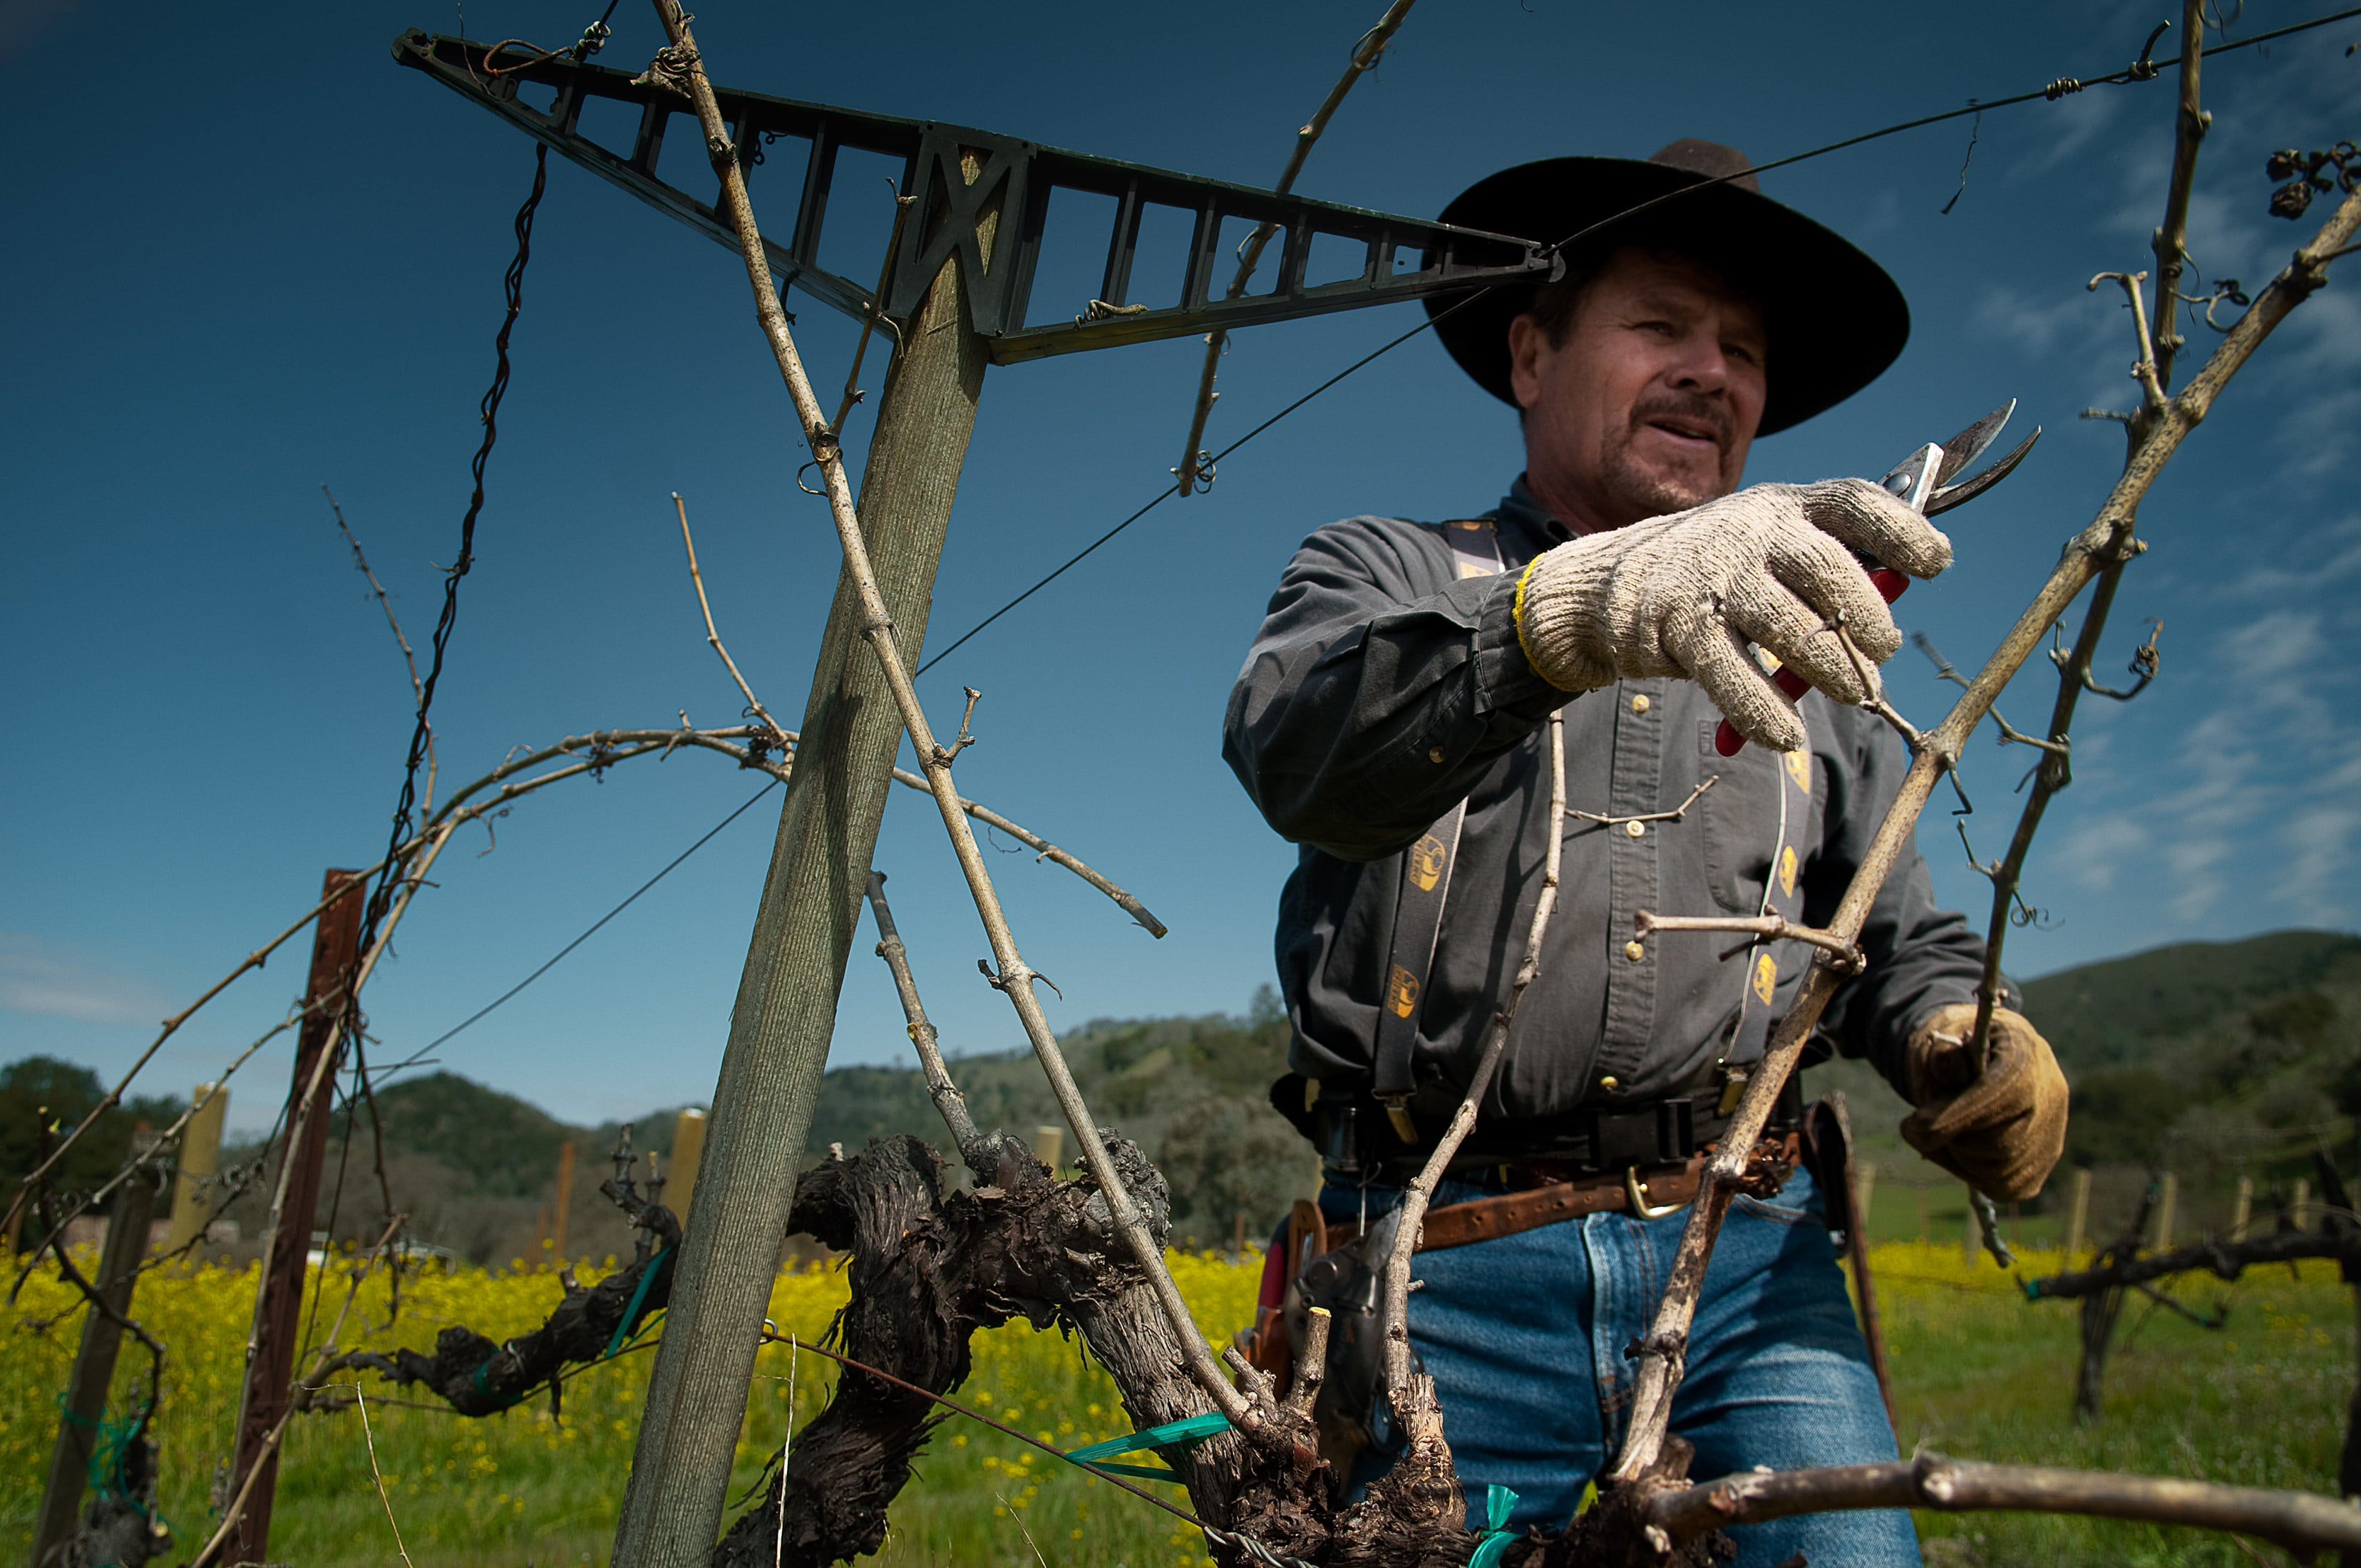 Napa Valley Vineyard Owner Tends To Grape Plants